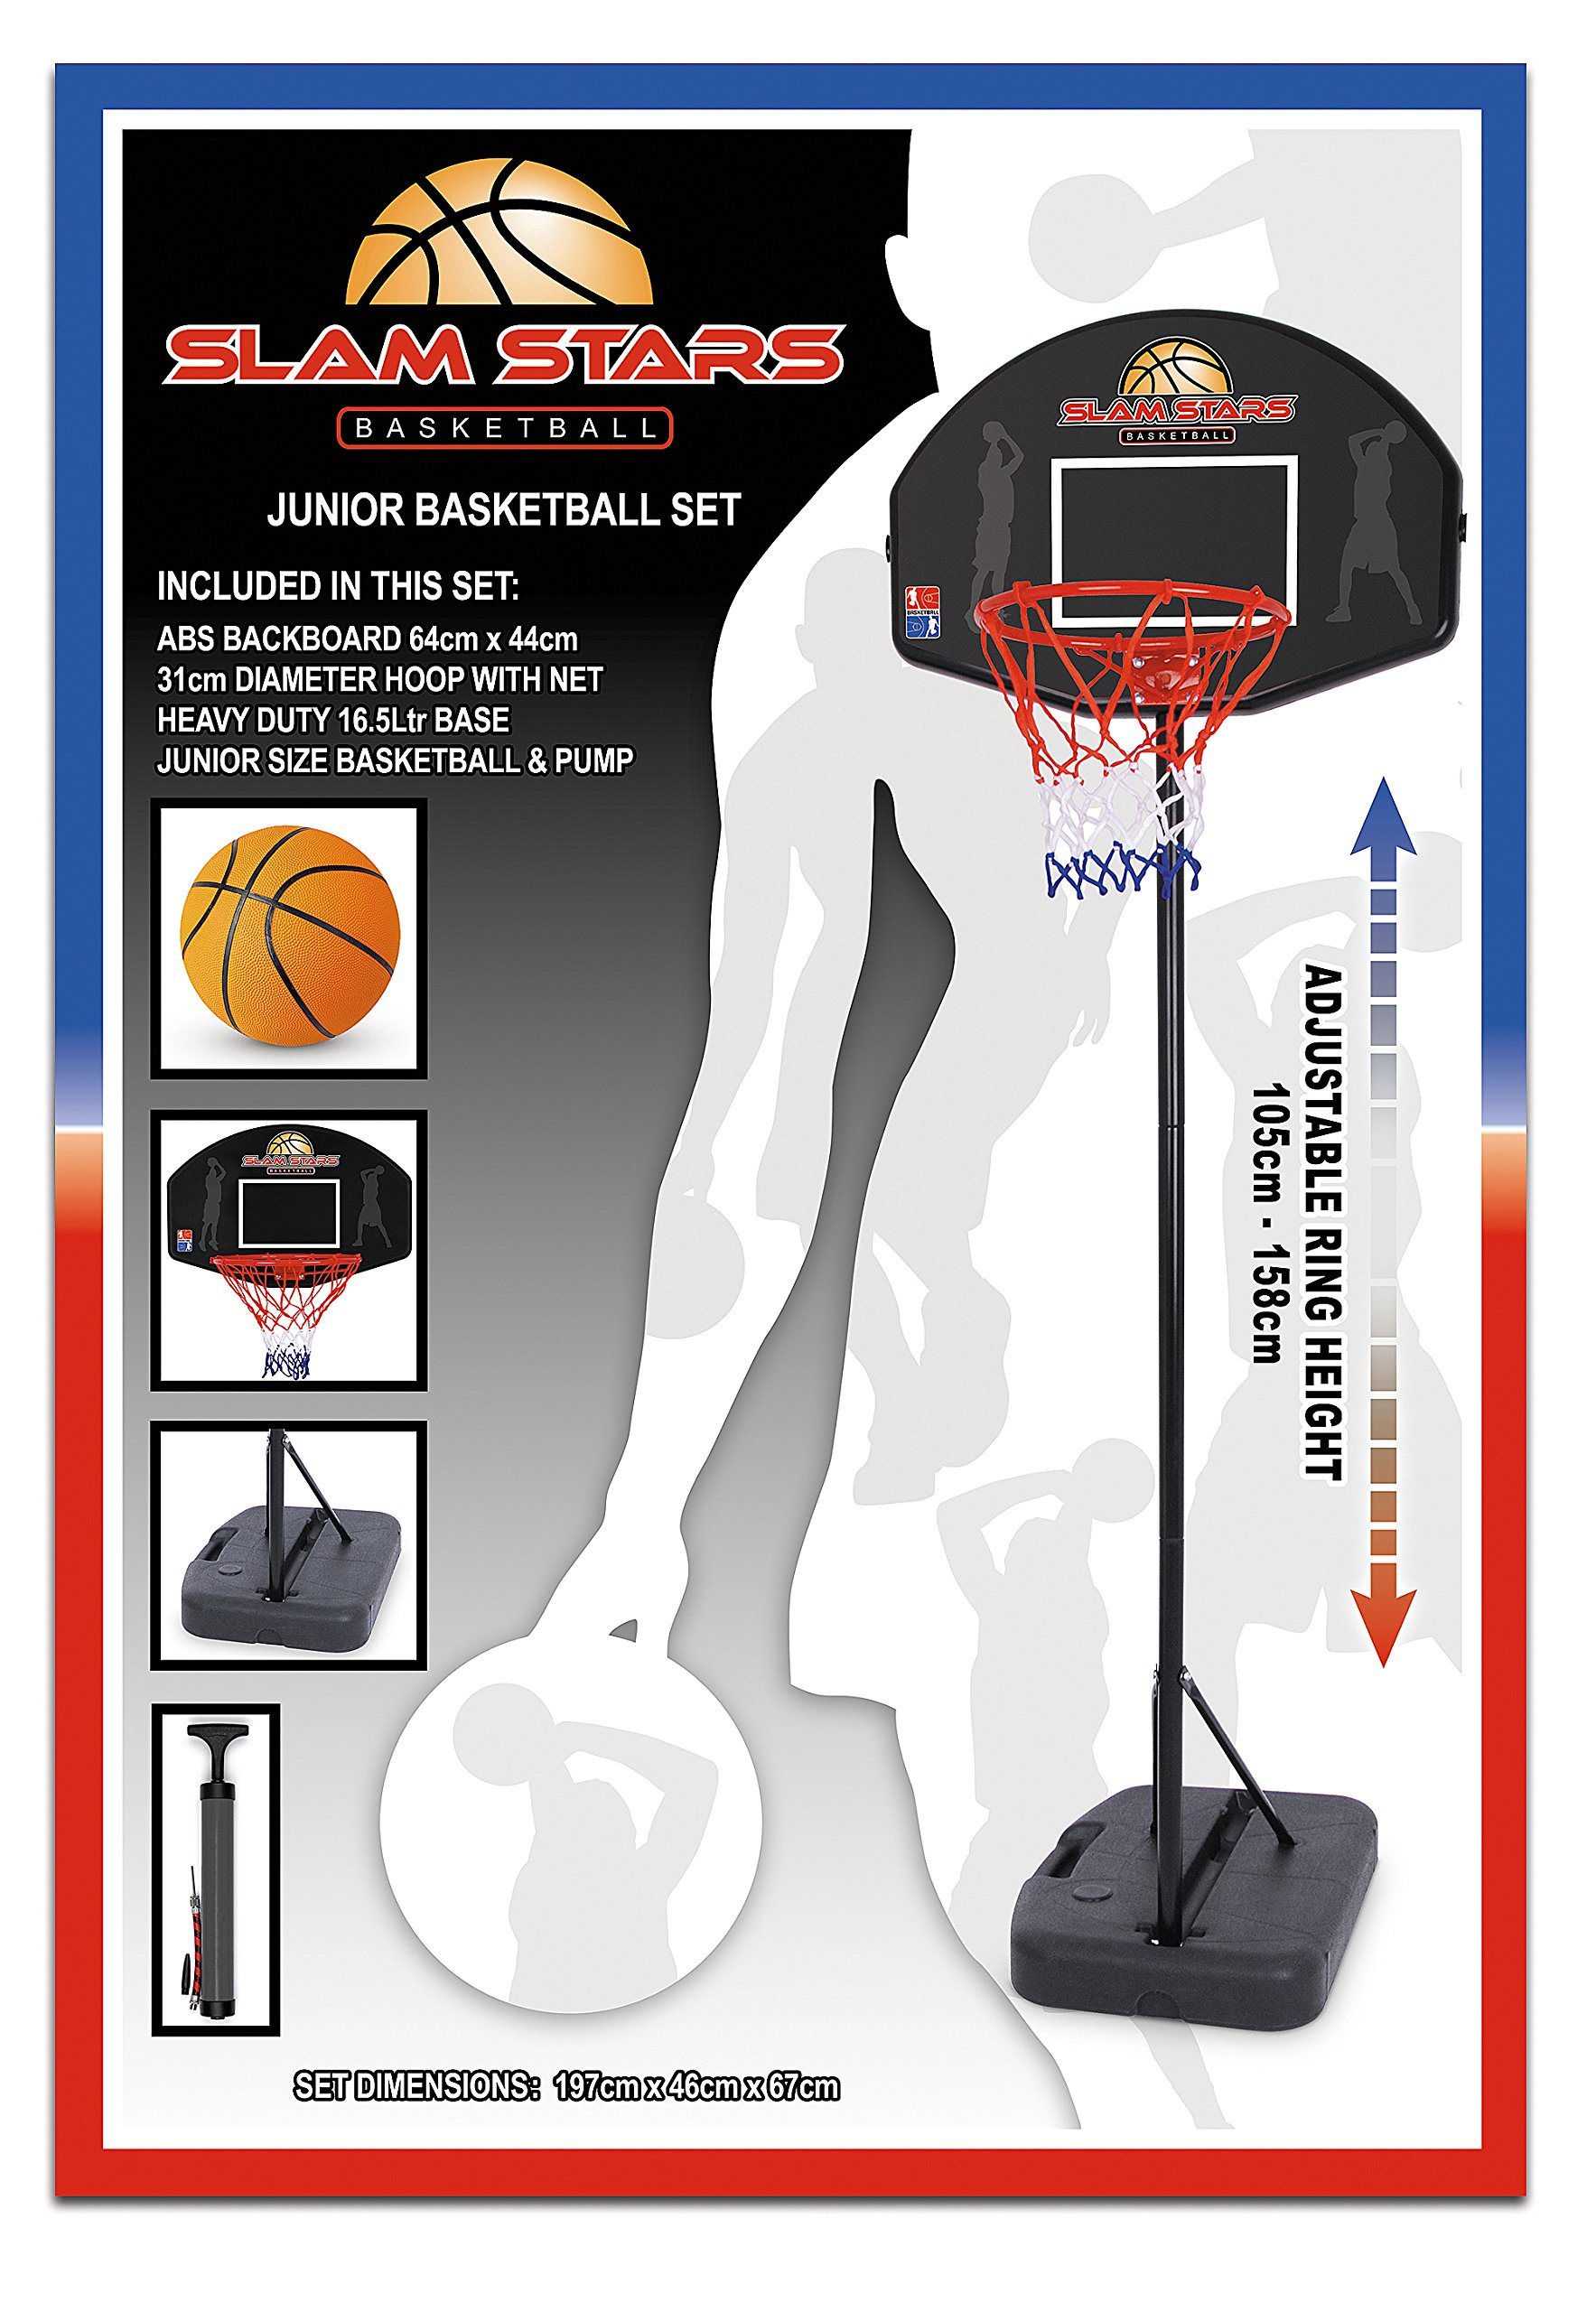 Slam Stars Junior Basketball Set - Black, 105-158 Cm by Slam Stars (Image #1)